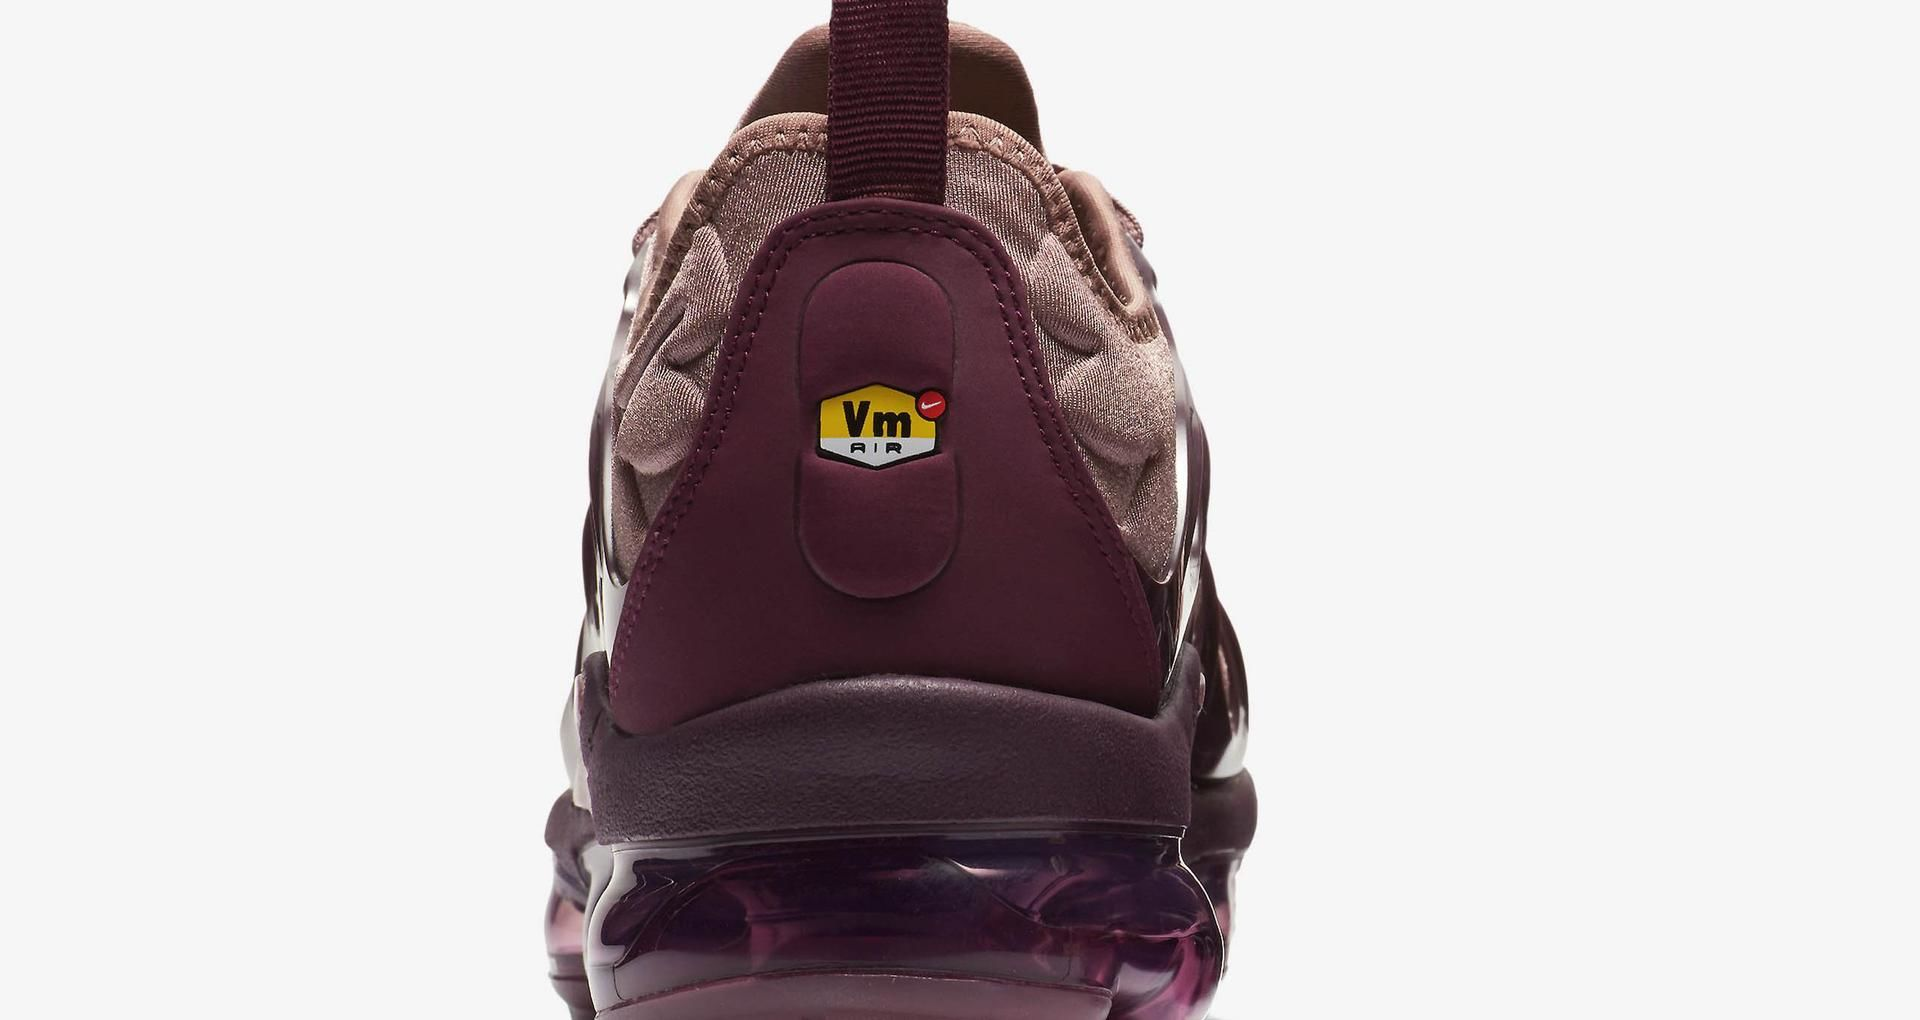 super popular 6742d 5a43f Women's Air Vapormax Plus 'Smokey Mauve & Bordeaux' Release ...